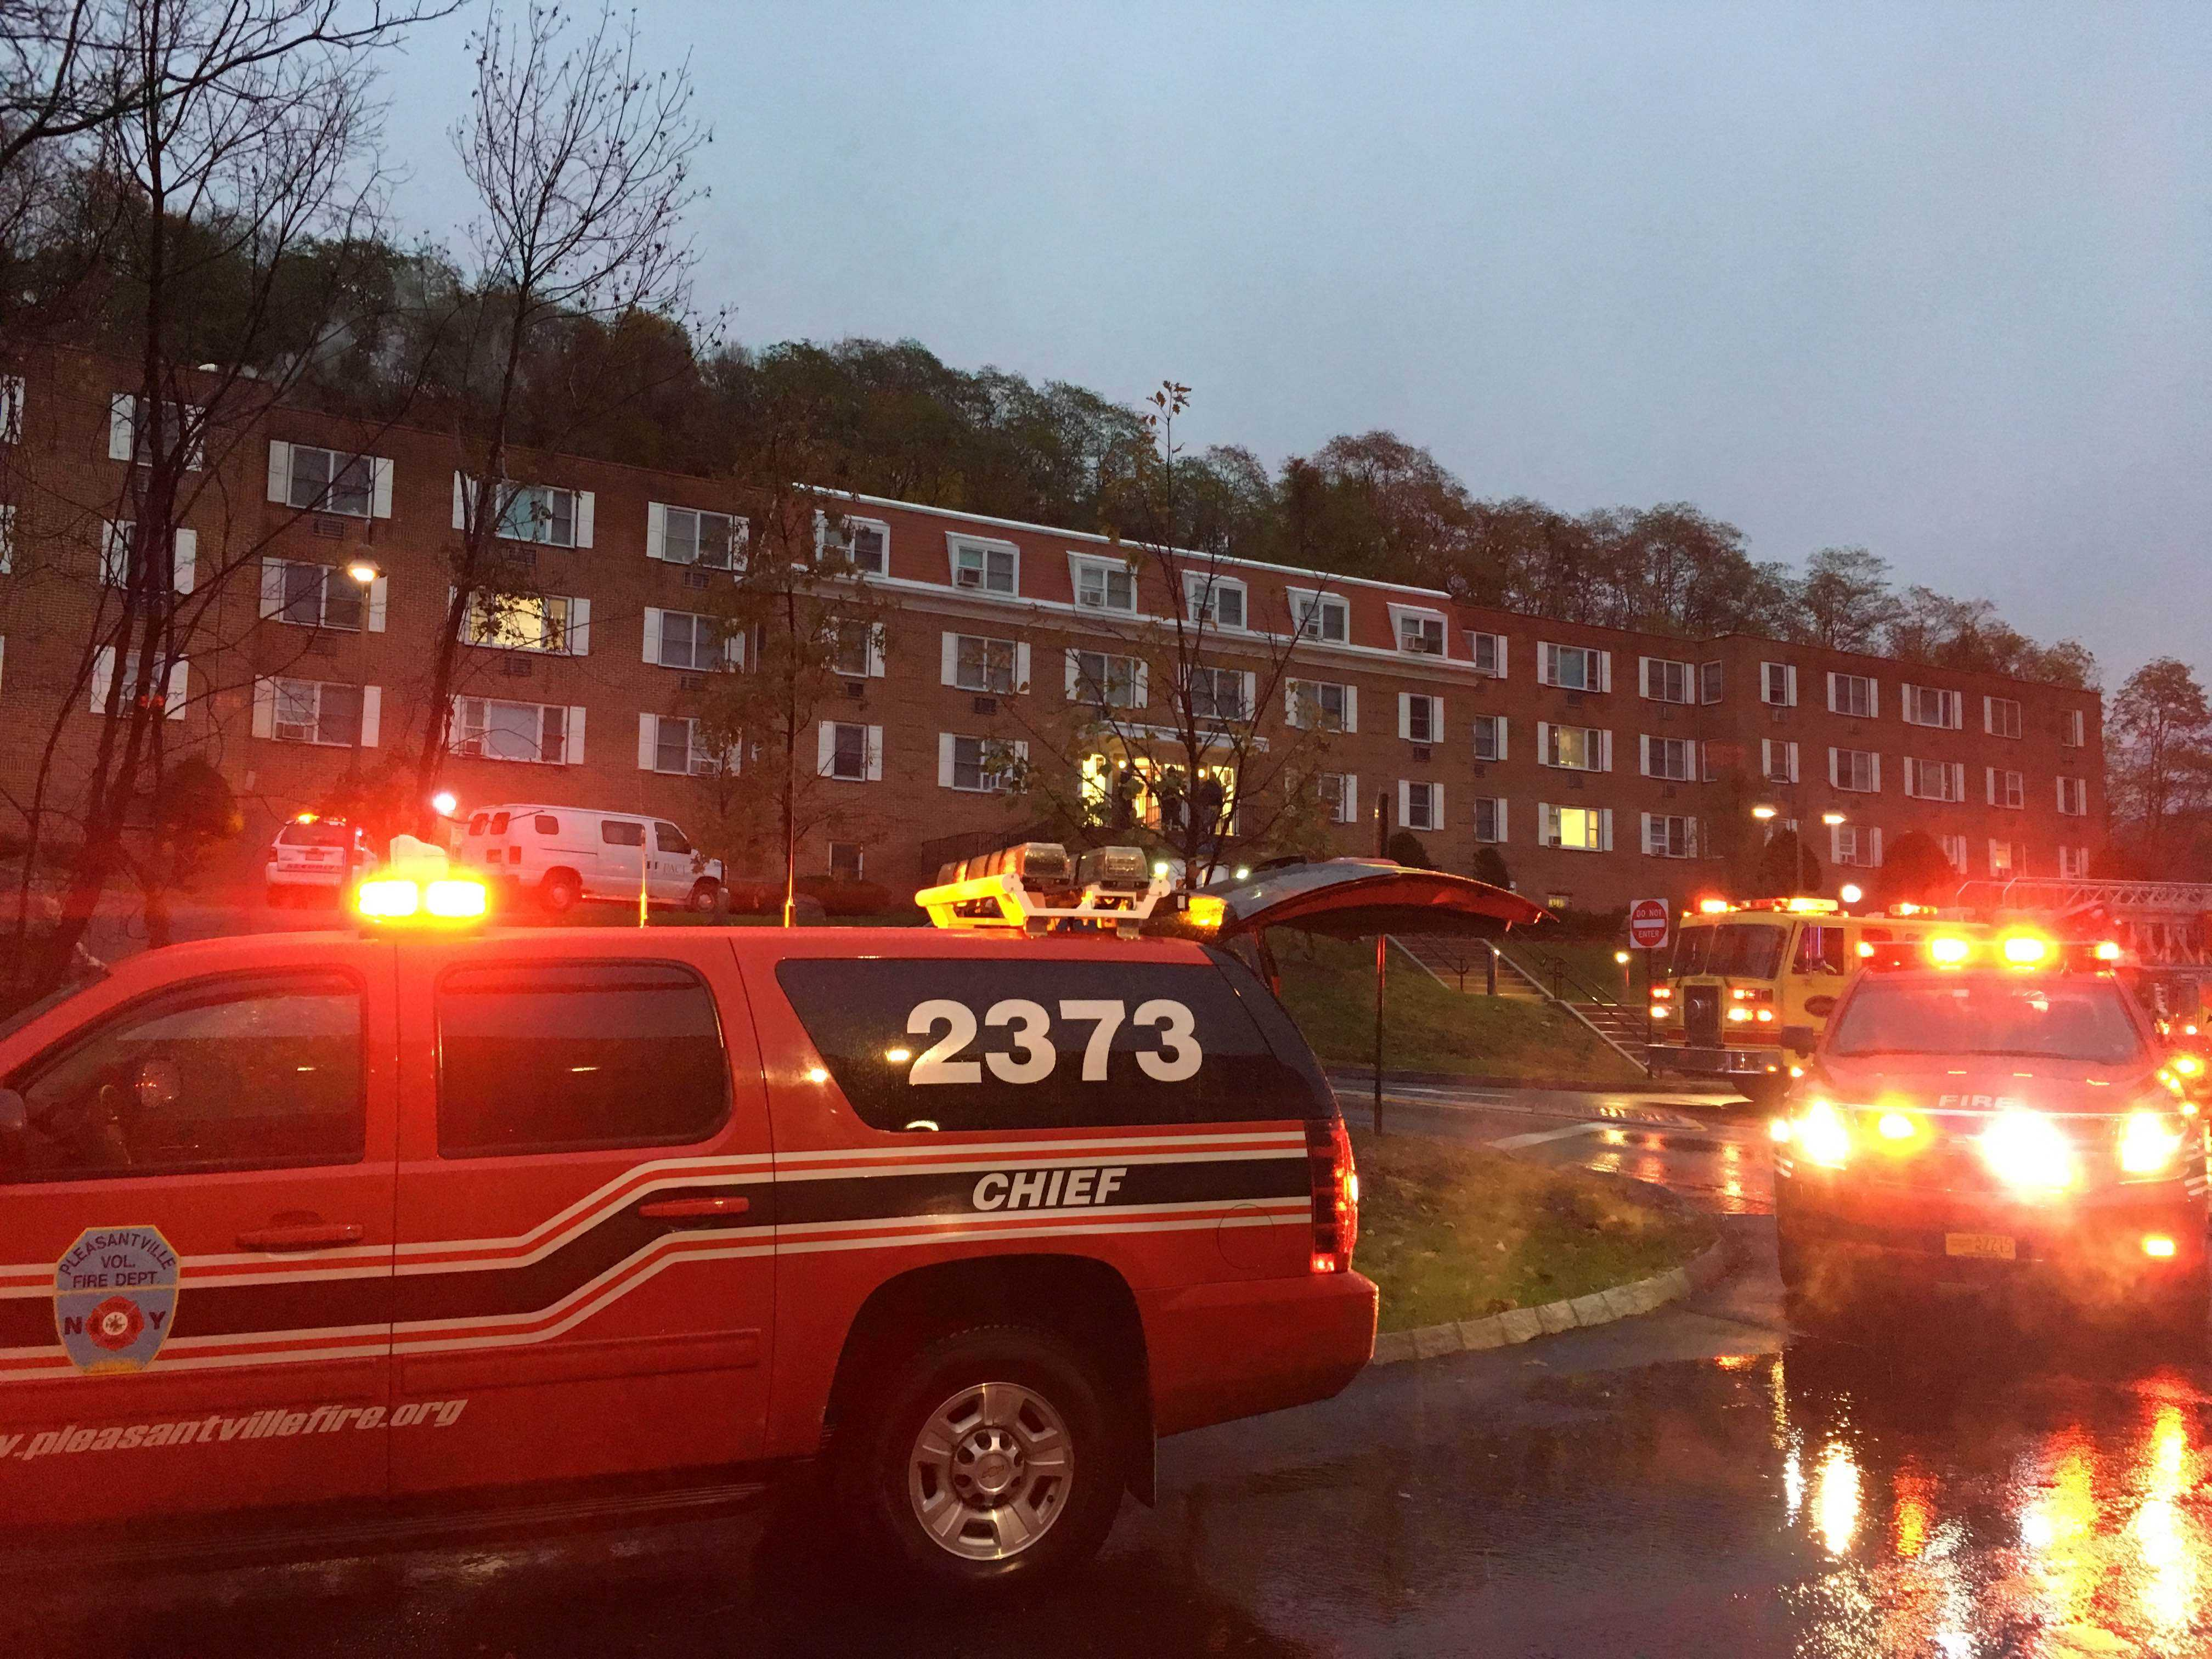 Fire fighters rush to Martin Hall after it was the subject of alleged arson. Photo by James Miranda.